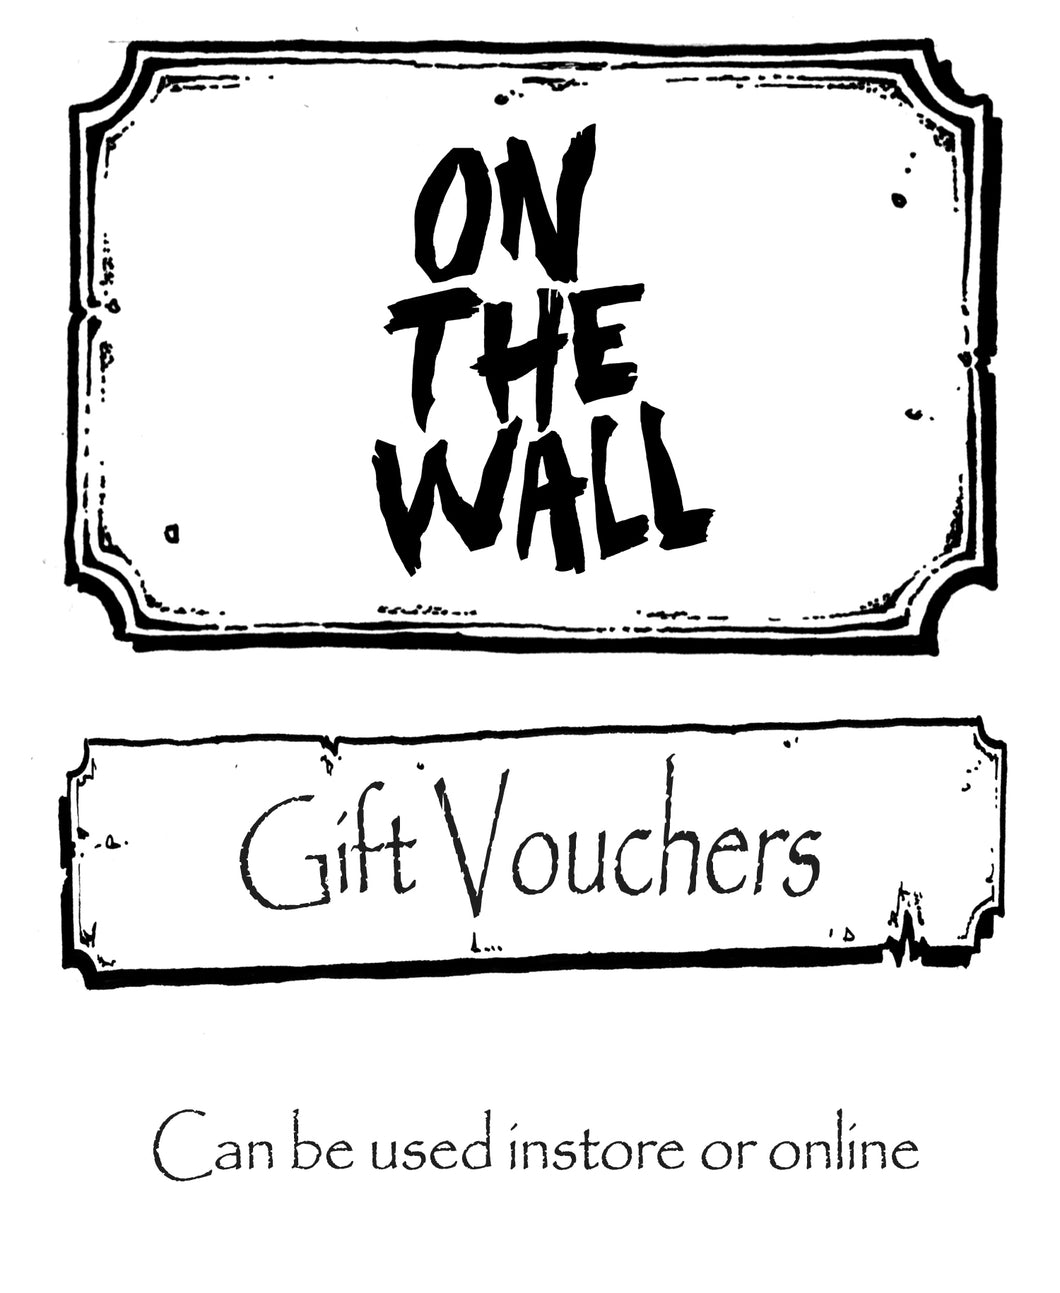 On The Wall Gift Vouchers